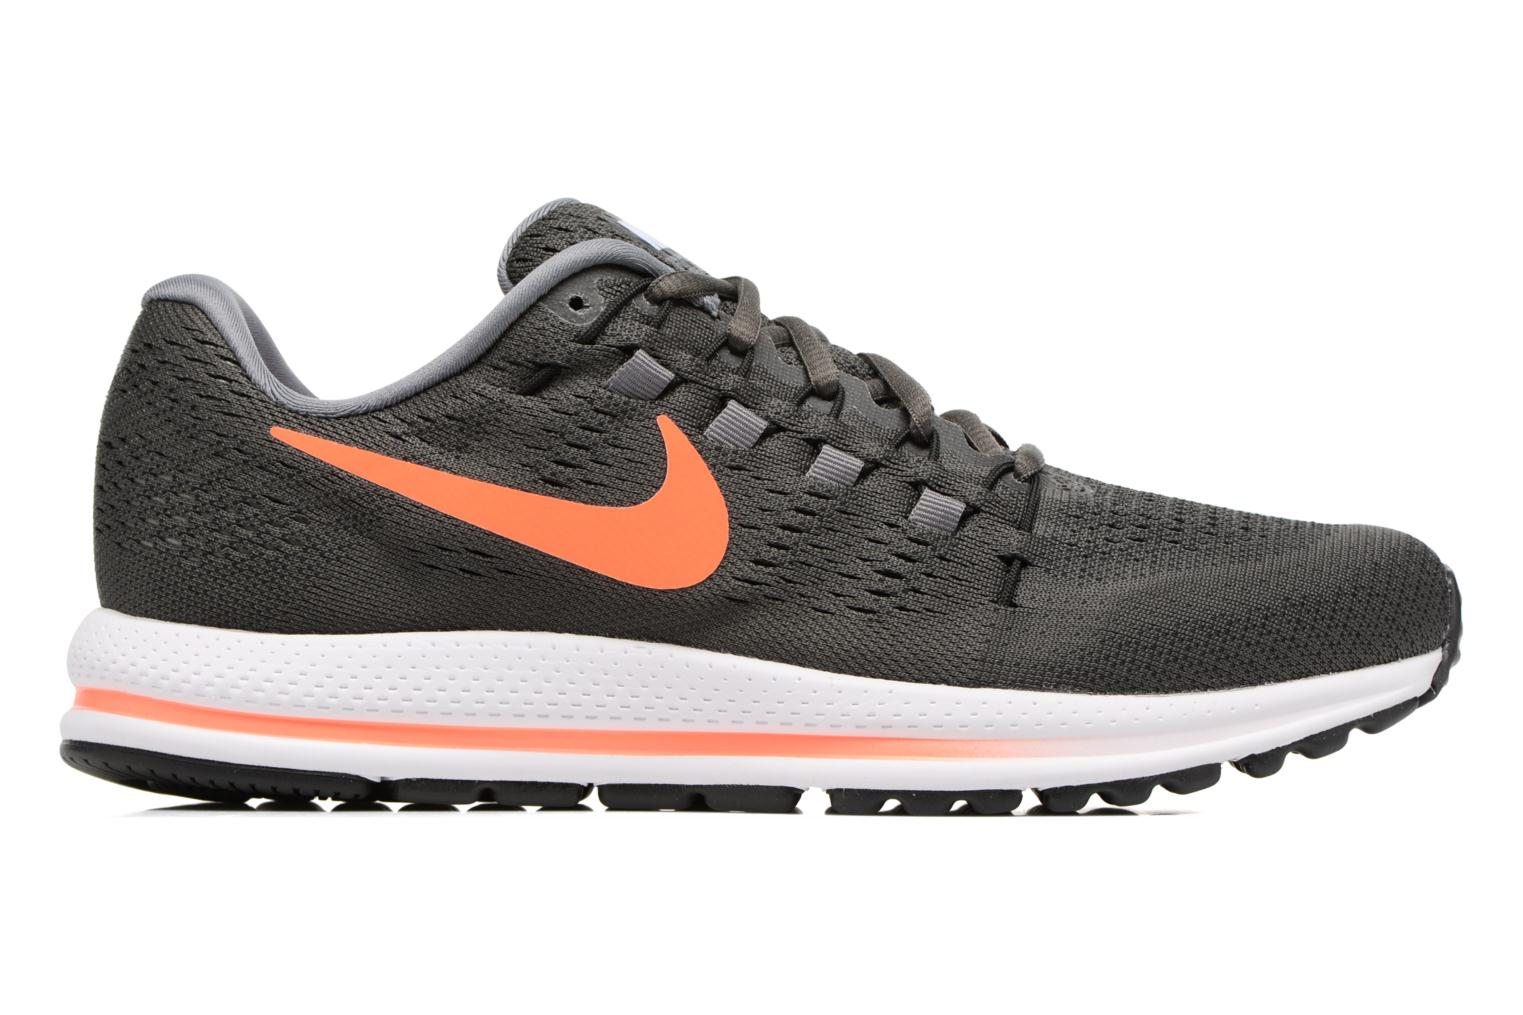 Nike Air Zoom Vomero 12 Midnight Fog/Total Crimson-Cool Grey